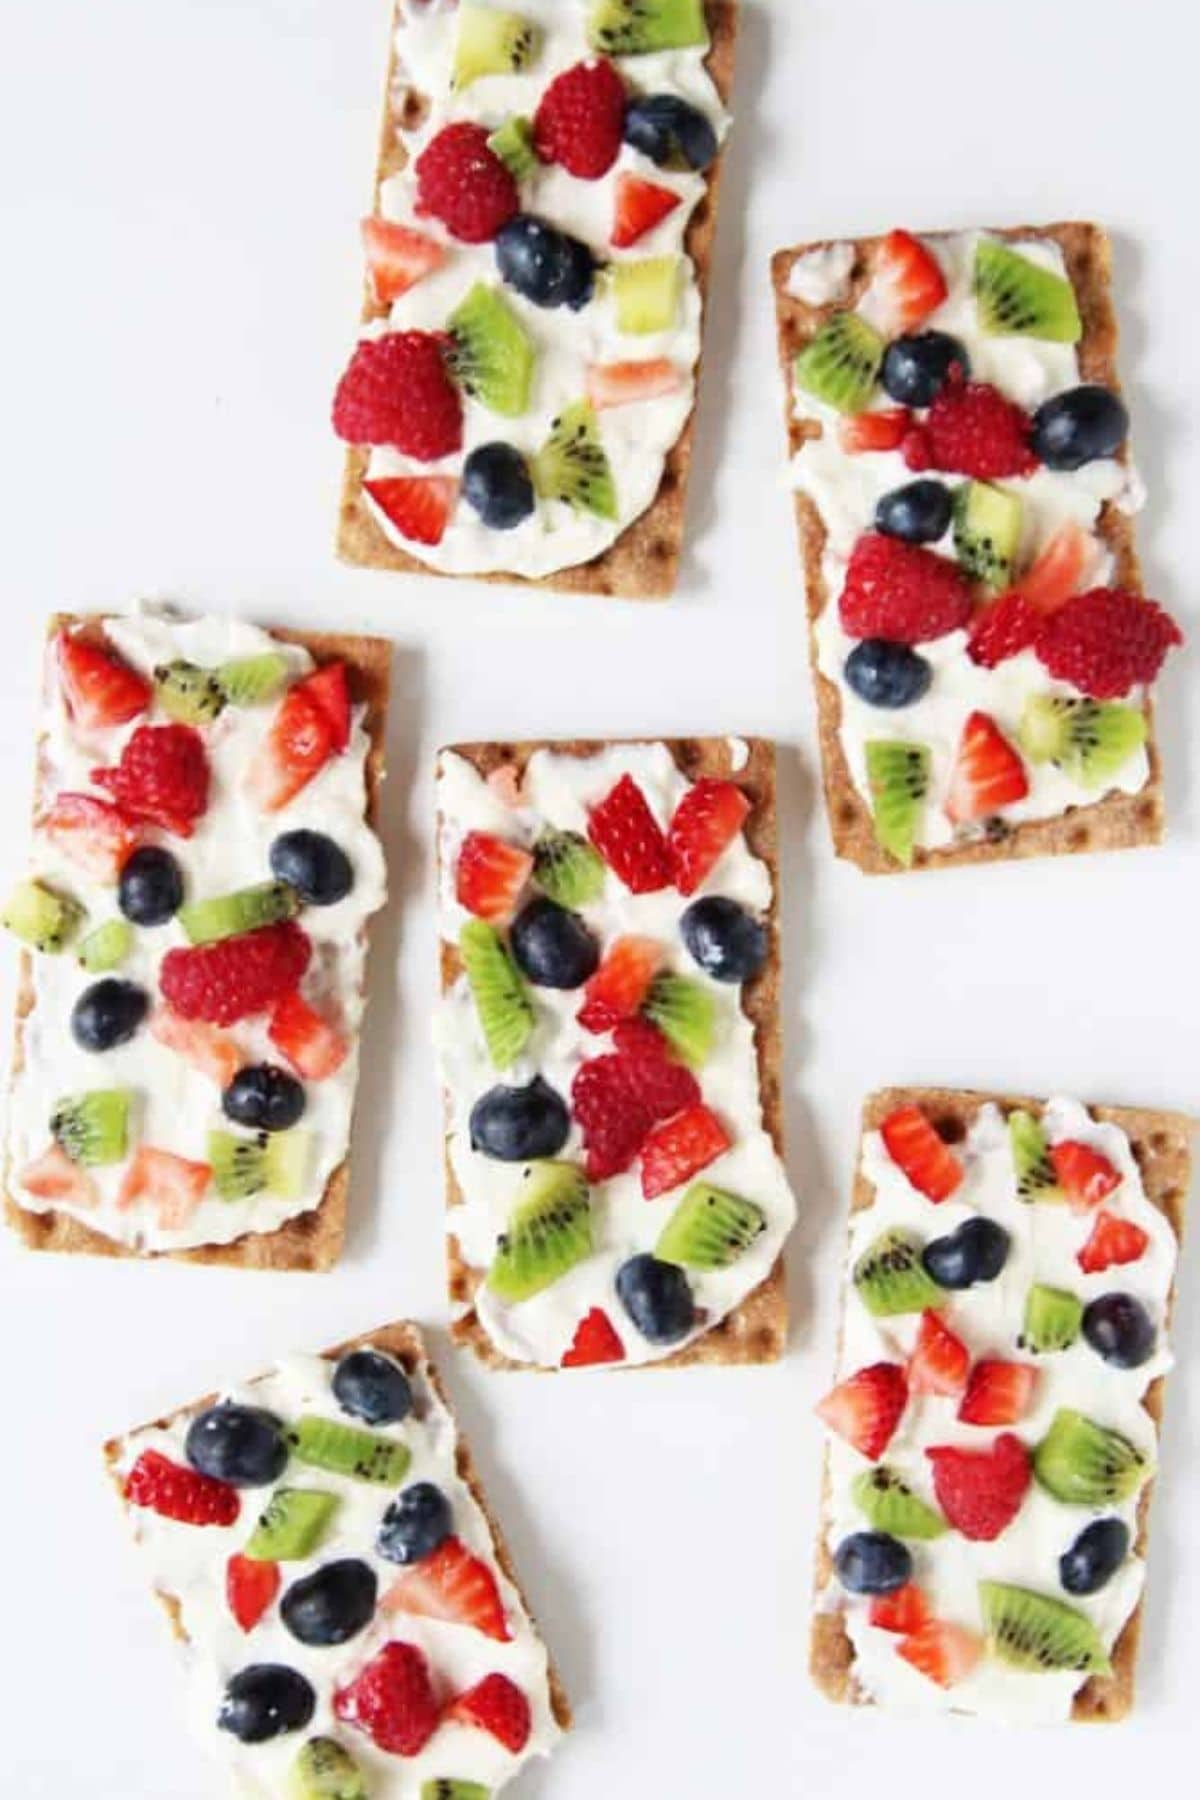 Graham crackers with cream cheese and fruit on top